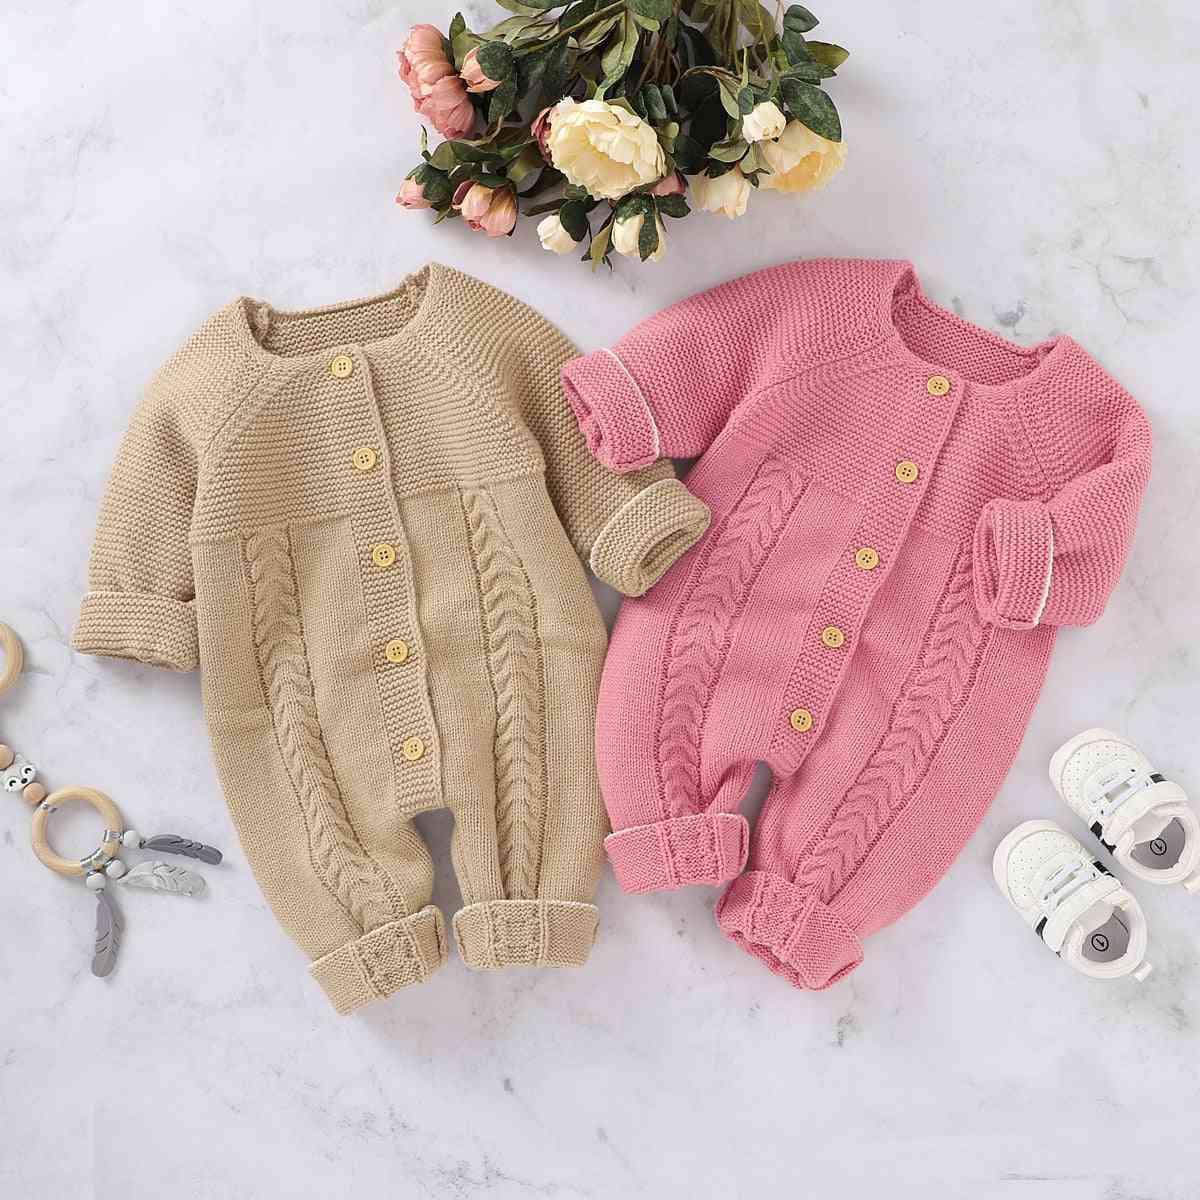 Autumn Winter Infant Baby Girl Knitted Romper Button Long Sleeve Jumpsuit Playsuit Sweater